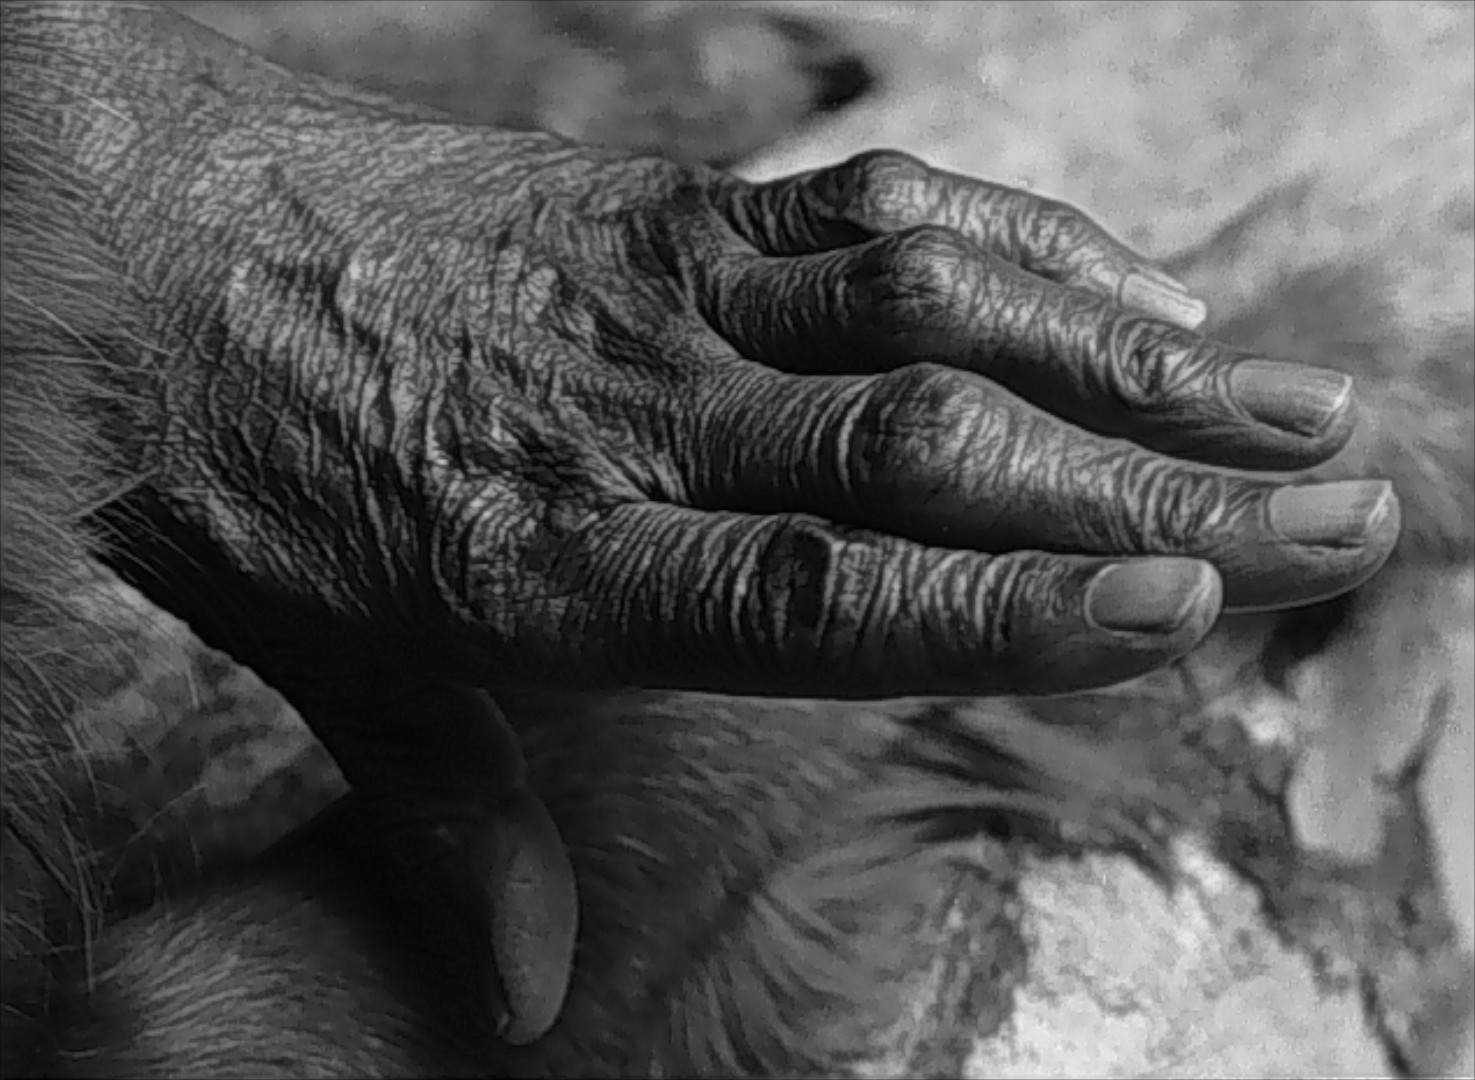 Black & white photograph of an old black woman's hand.